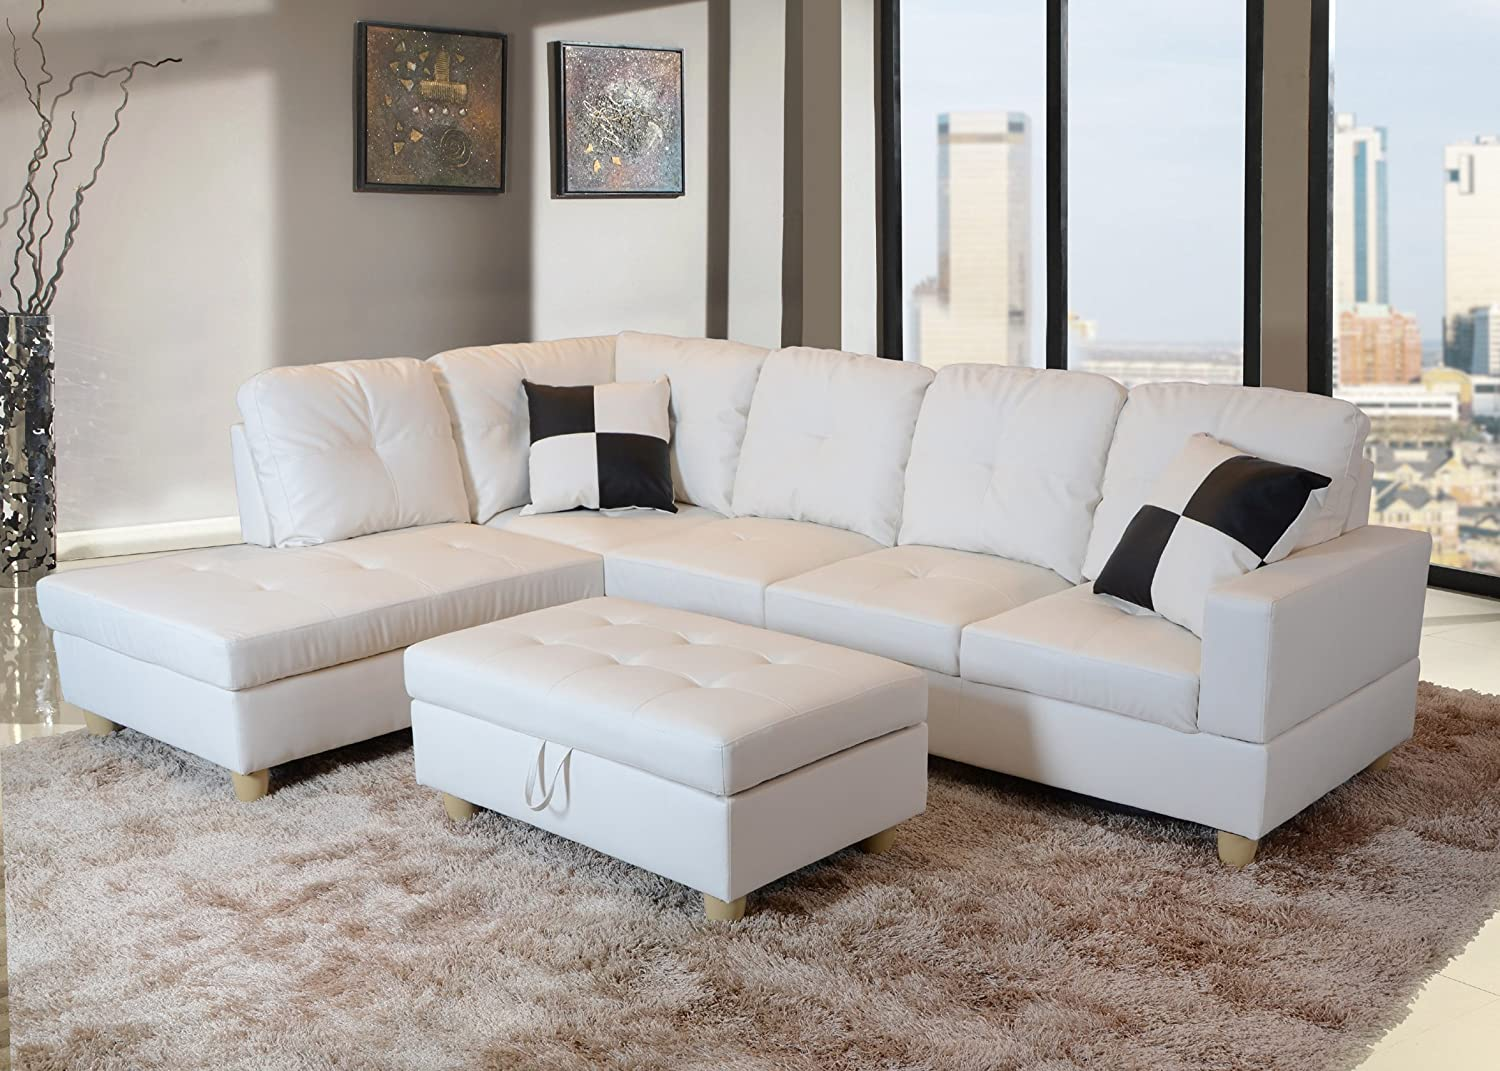 Amazon LifeStyle Faux Leather Right facing Sectional Sofa Set